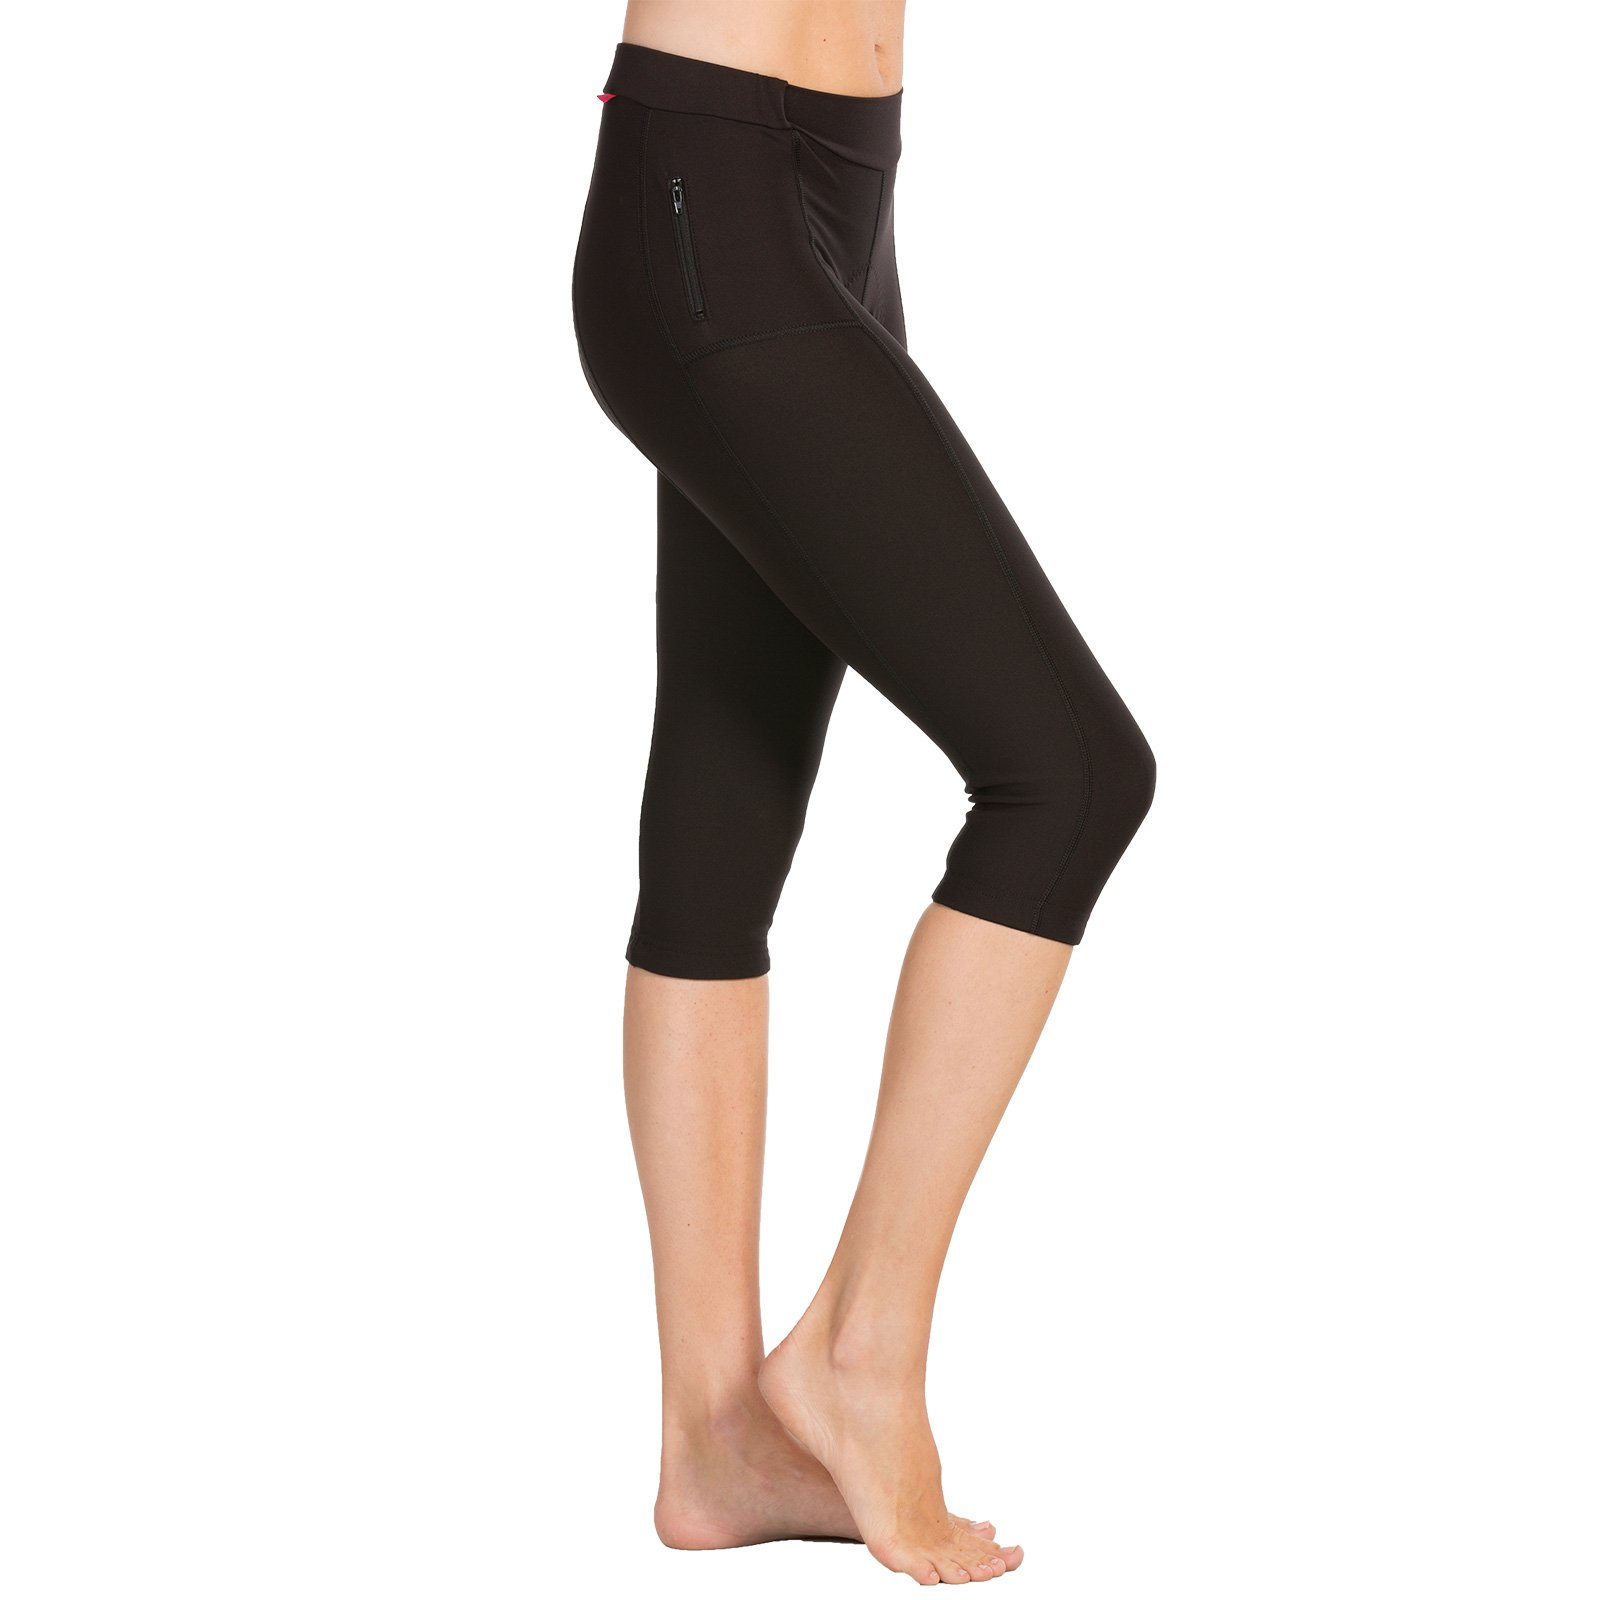 Terry Cycling Knickers for Women Plus Size - One of Our Most Popular Black Bike Bottoms for All-Season Riding - Black - 1X by Terry